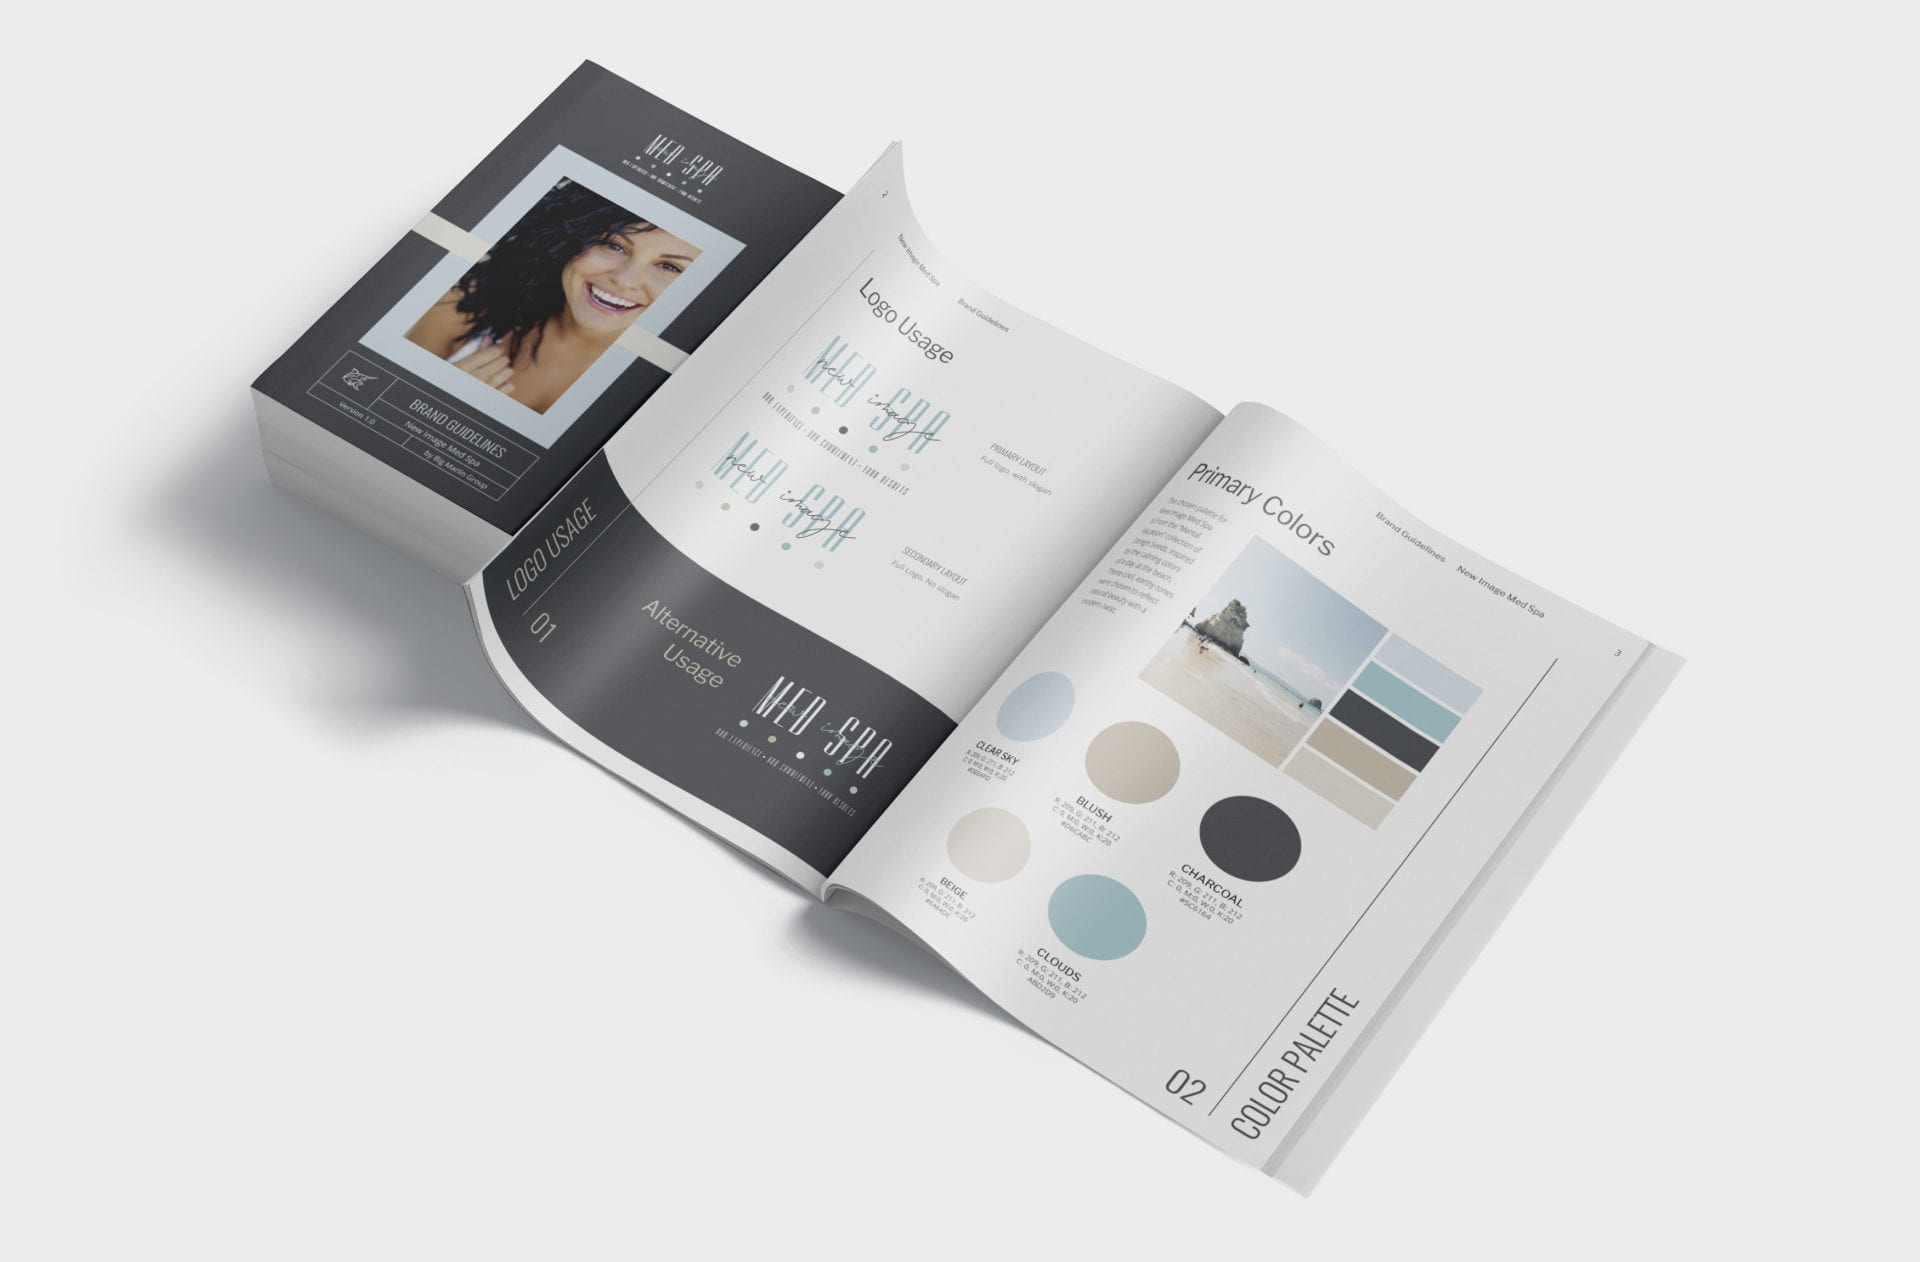 New Image Med Spa Brand Guidelines